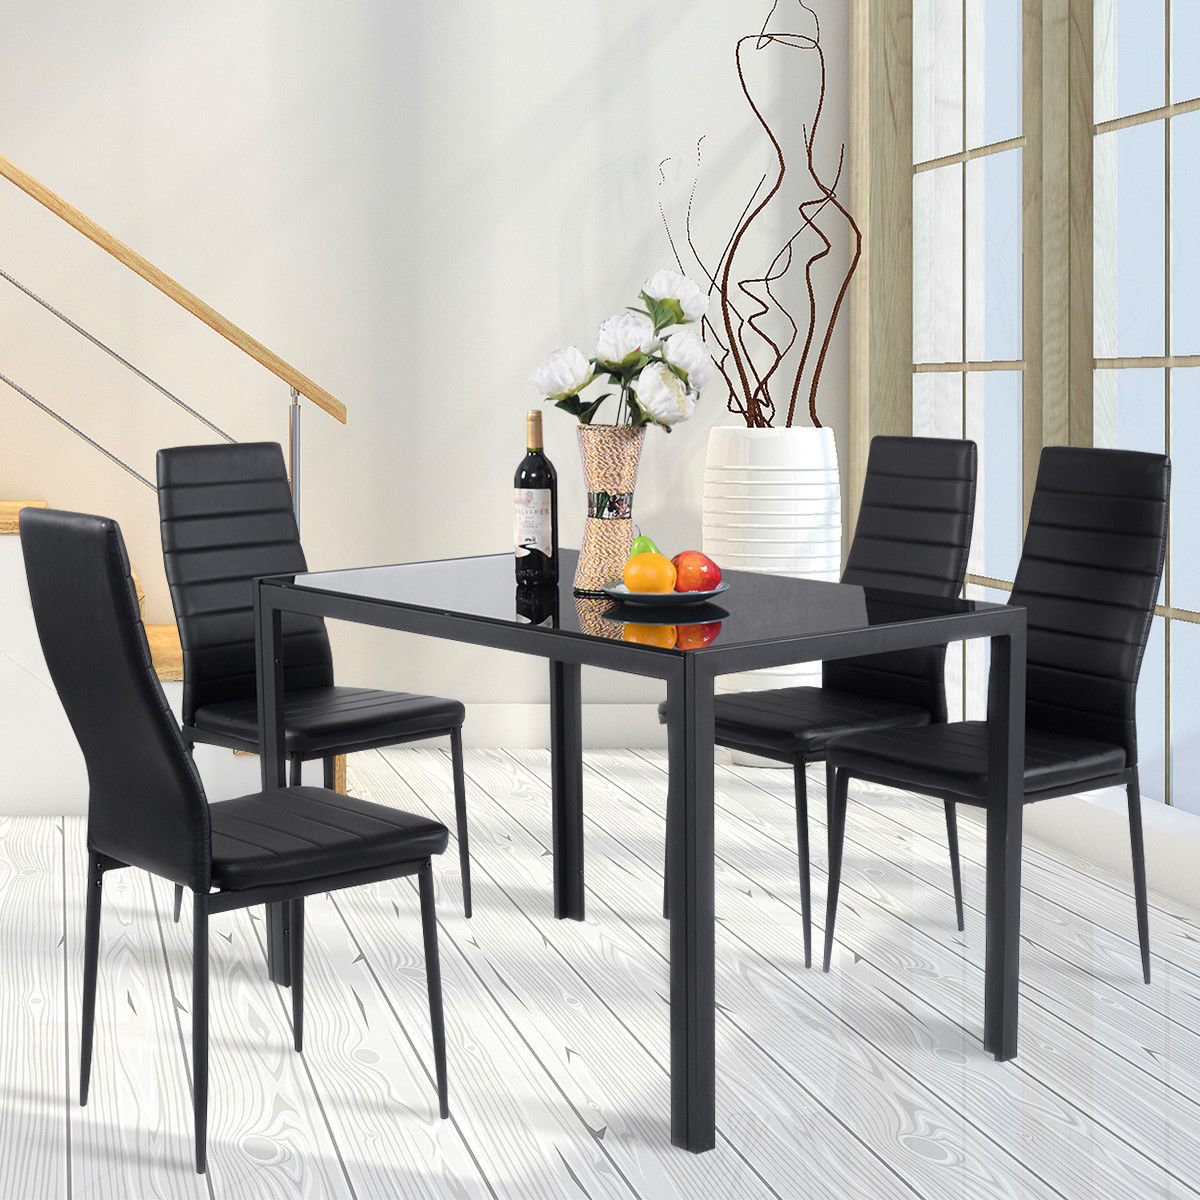 Edgeworth 5 Piece Dining Set Regarding Best And Newest Linette 5 Piece Dining Table Sets (Photo 3 of 20)